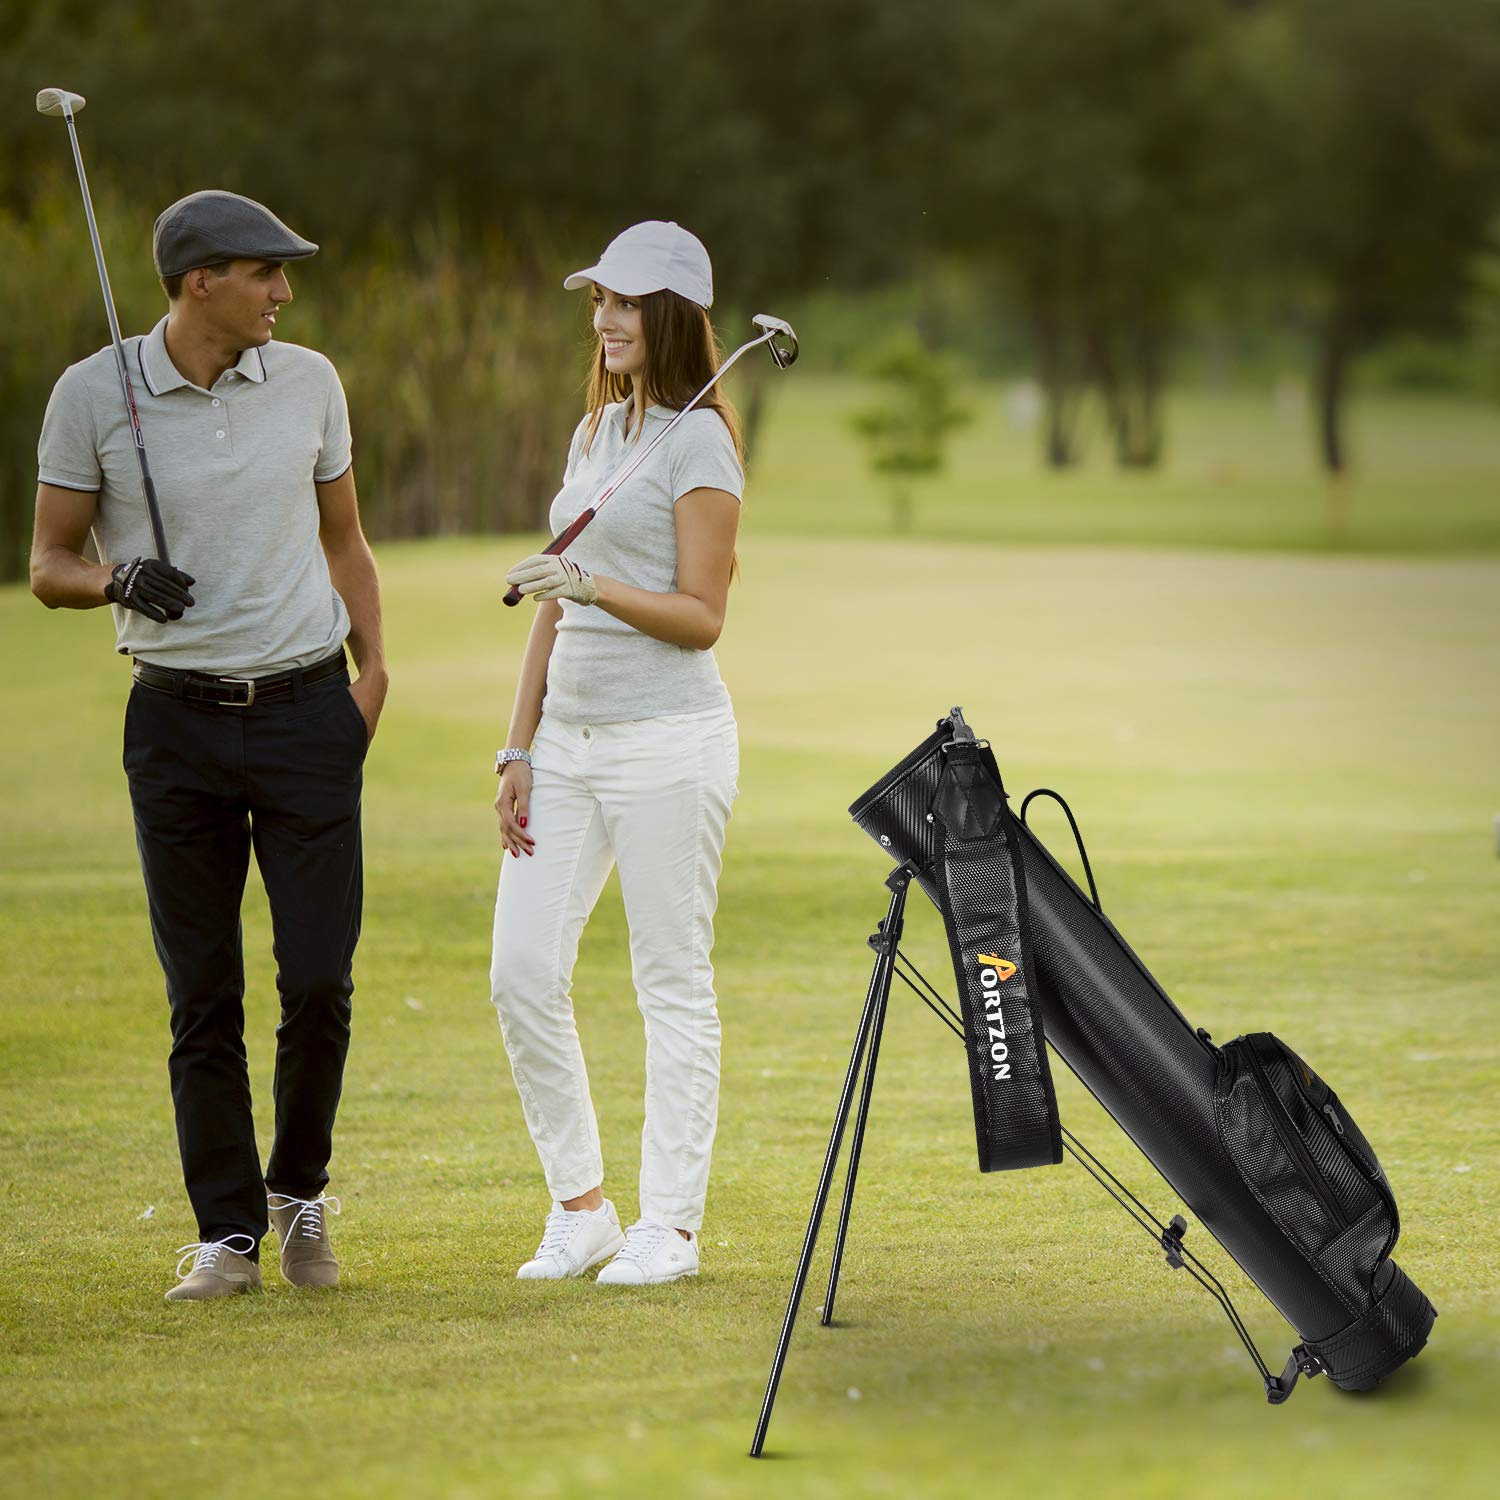 Portzon Golf Stand Bag ONLY $4...